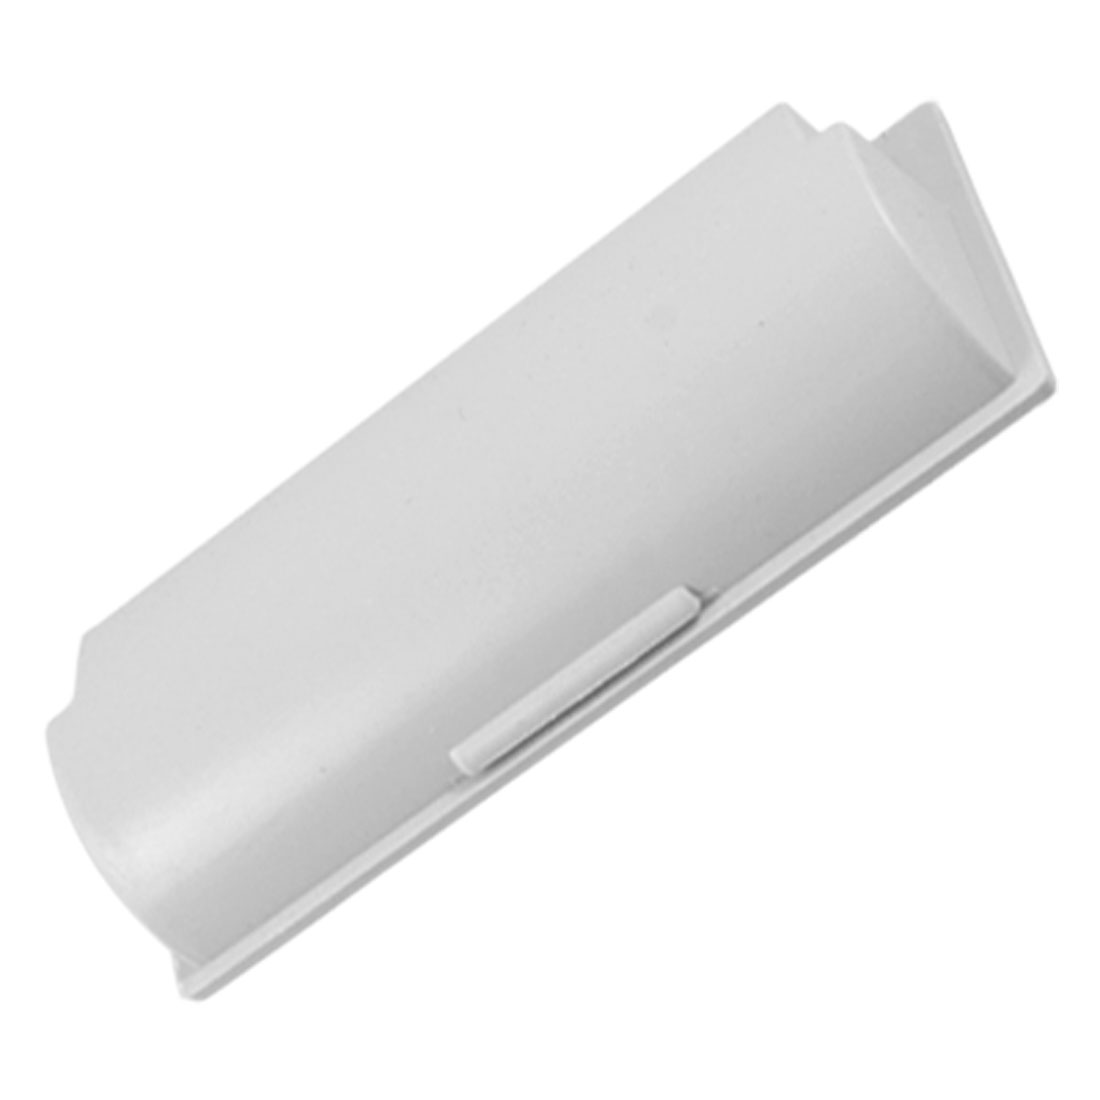 "4.3"" x 1.5"" Plastic Recessed Flush Pull Door Cabinet Drawer Handle Gray"